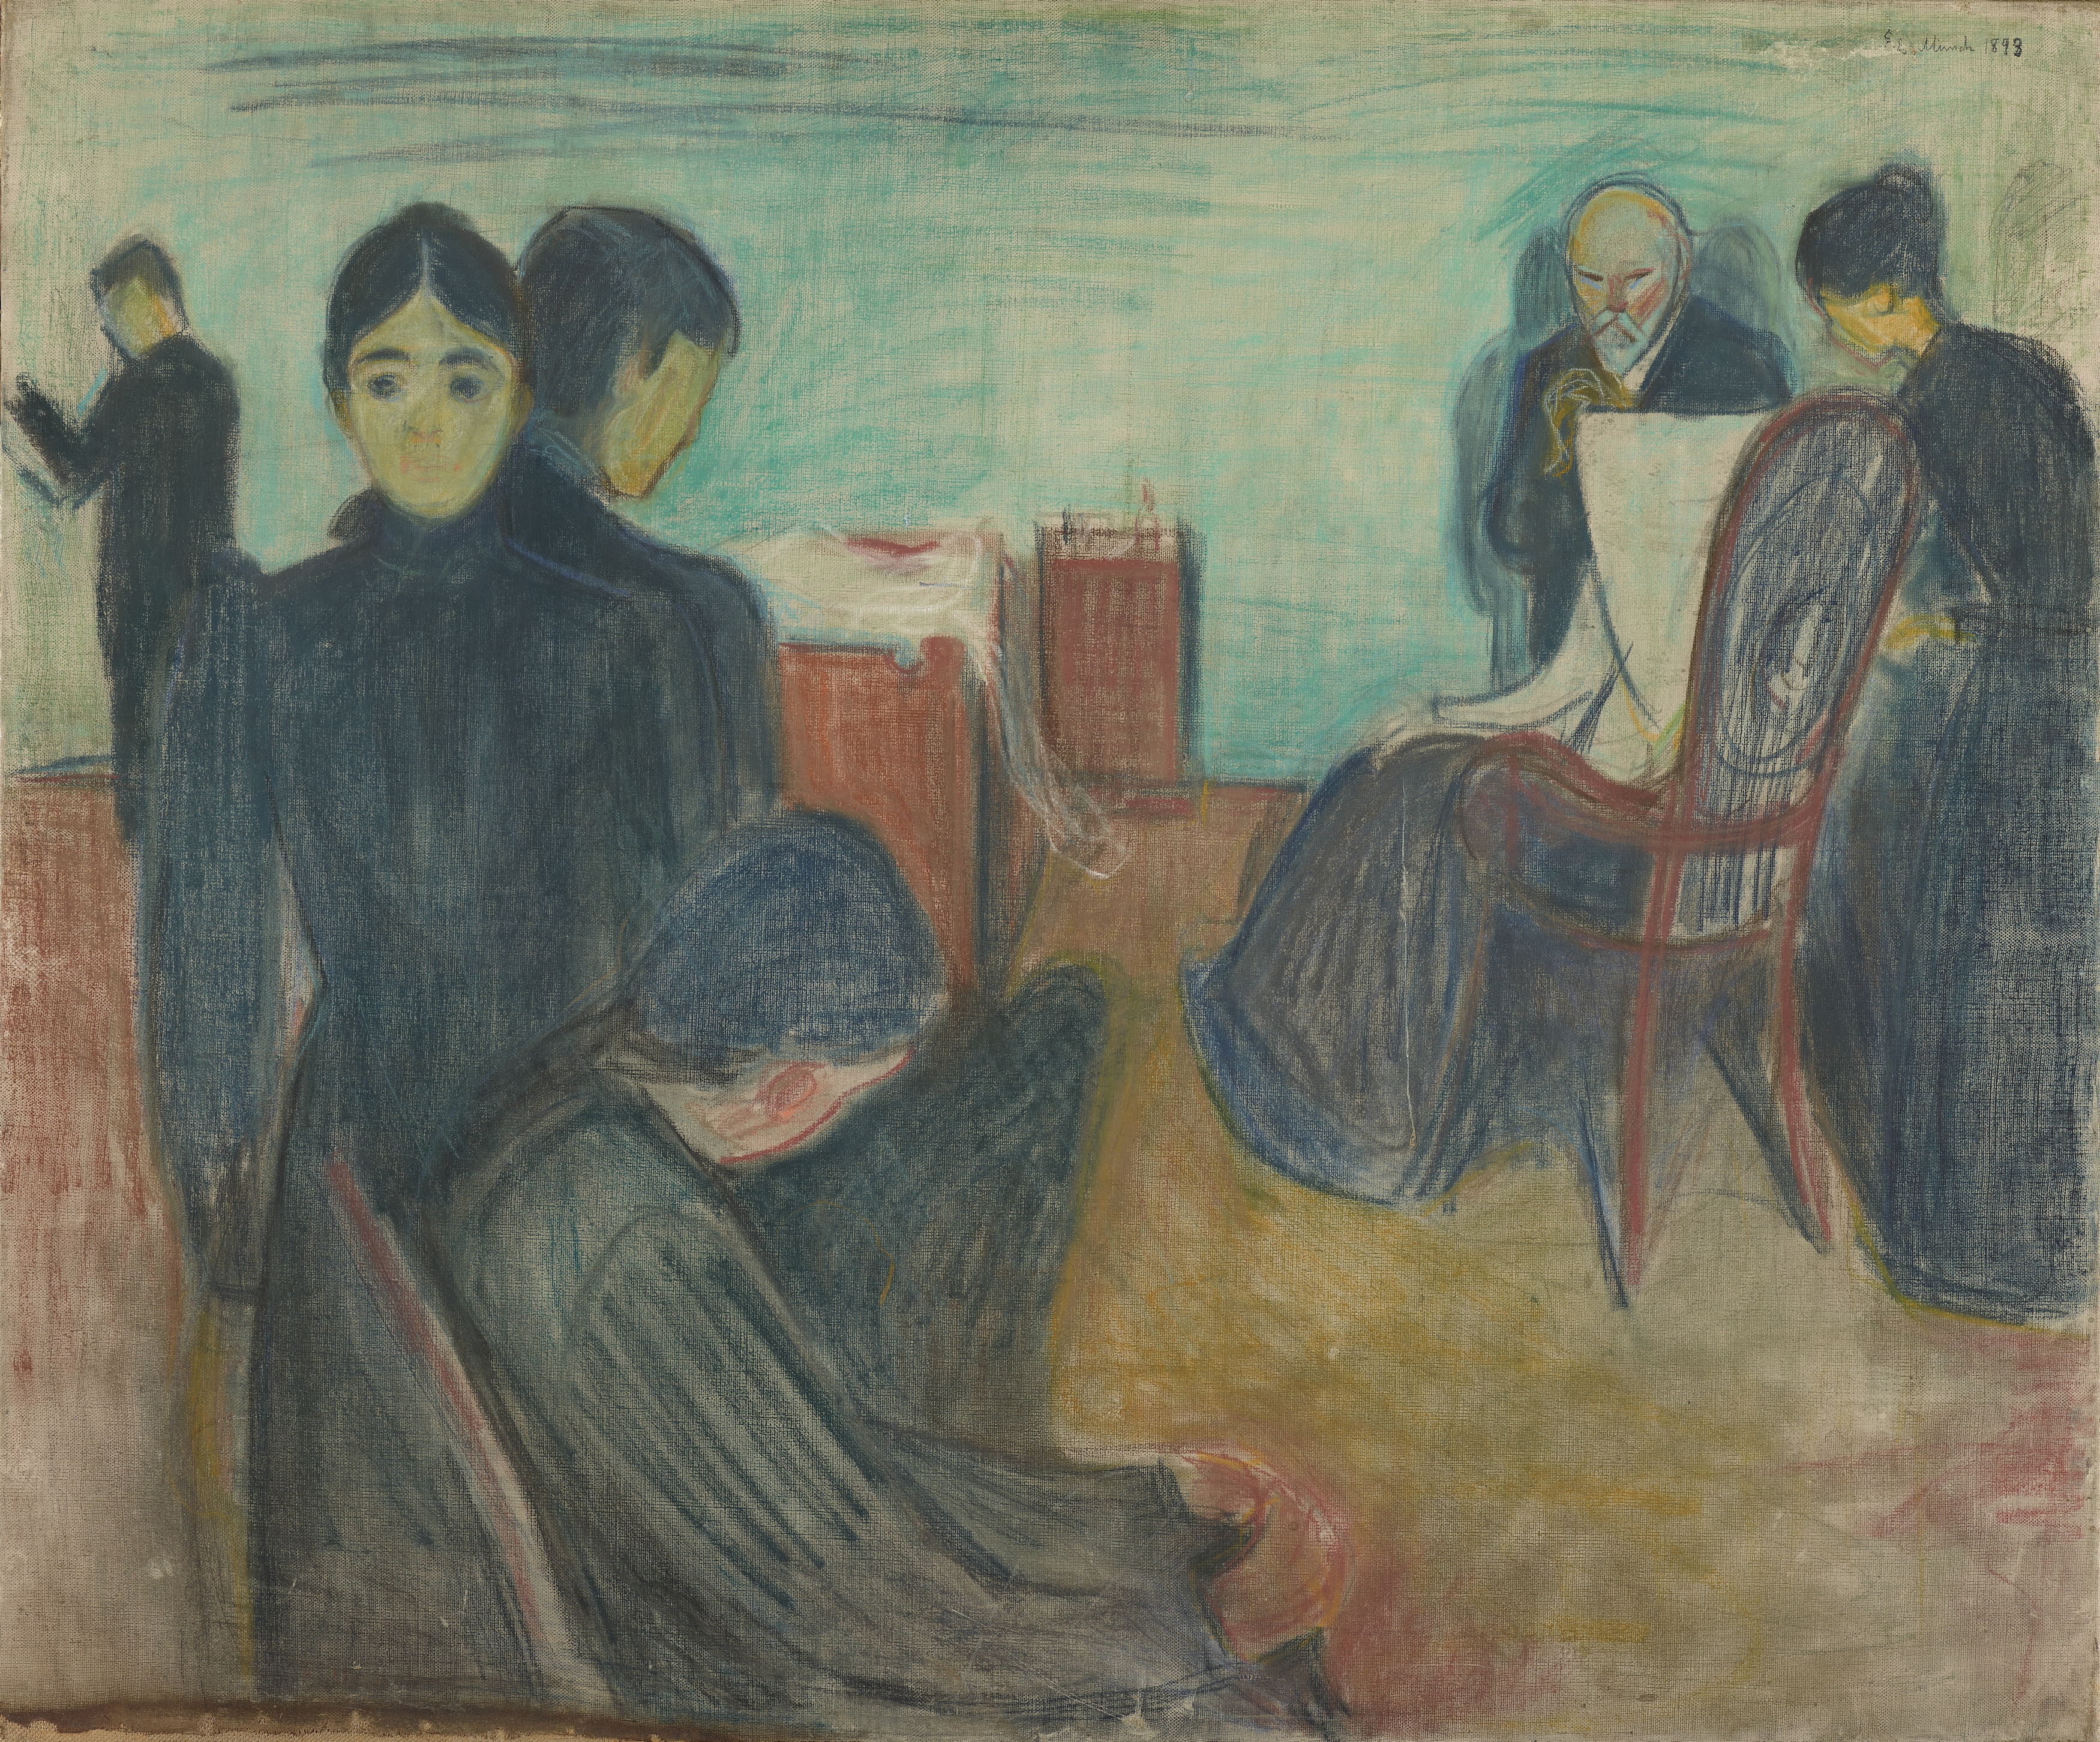 Edvard Munch: Death in the Sickroom. Pastel on canvas, 1893. Photo © Munchmuseet